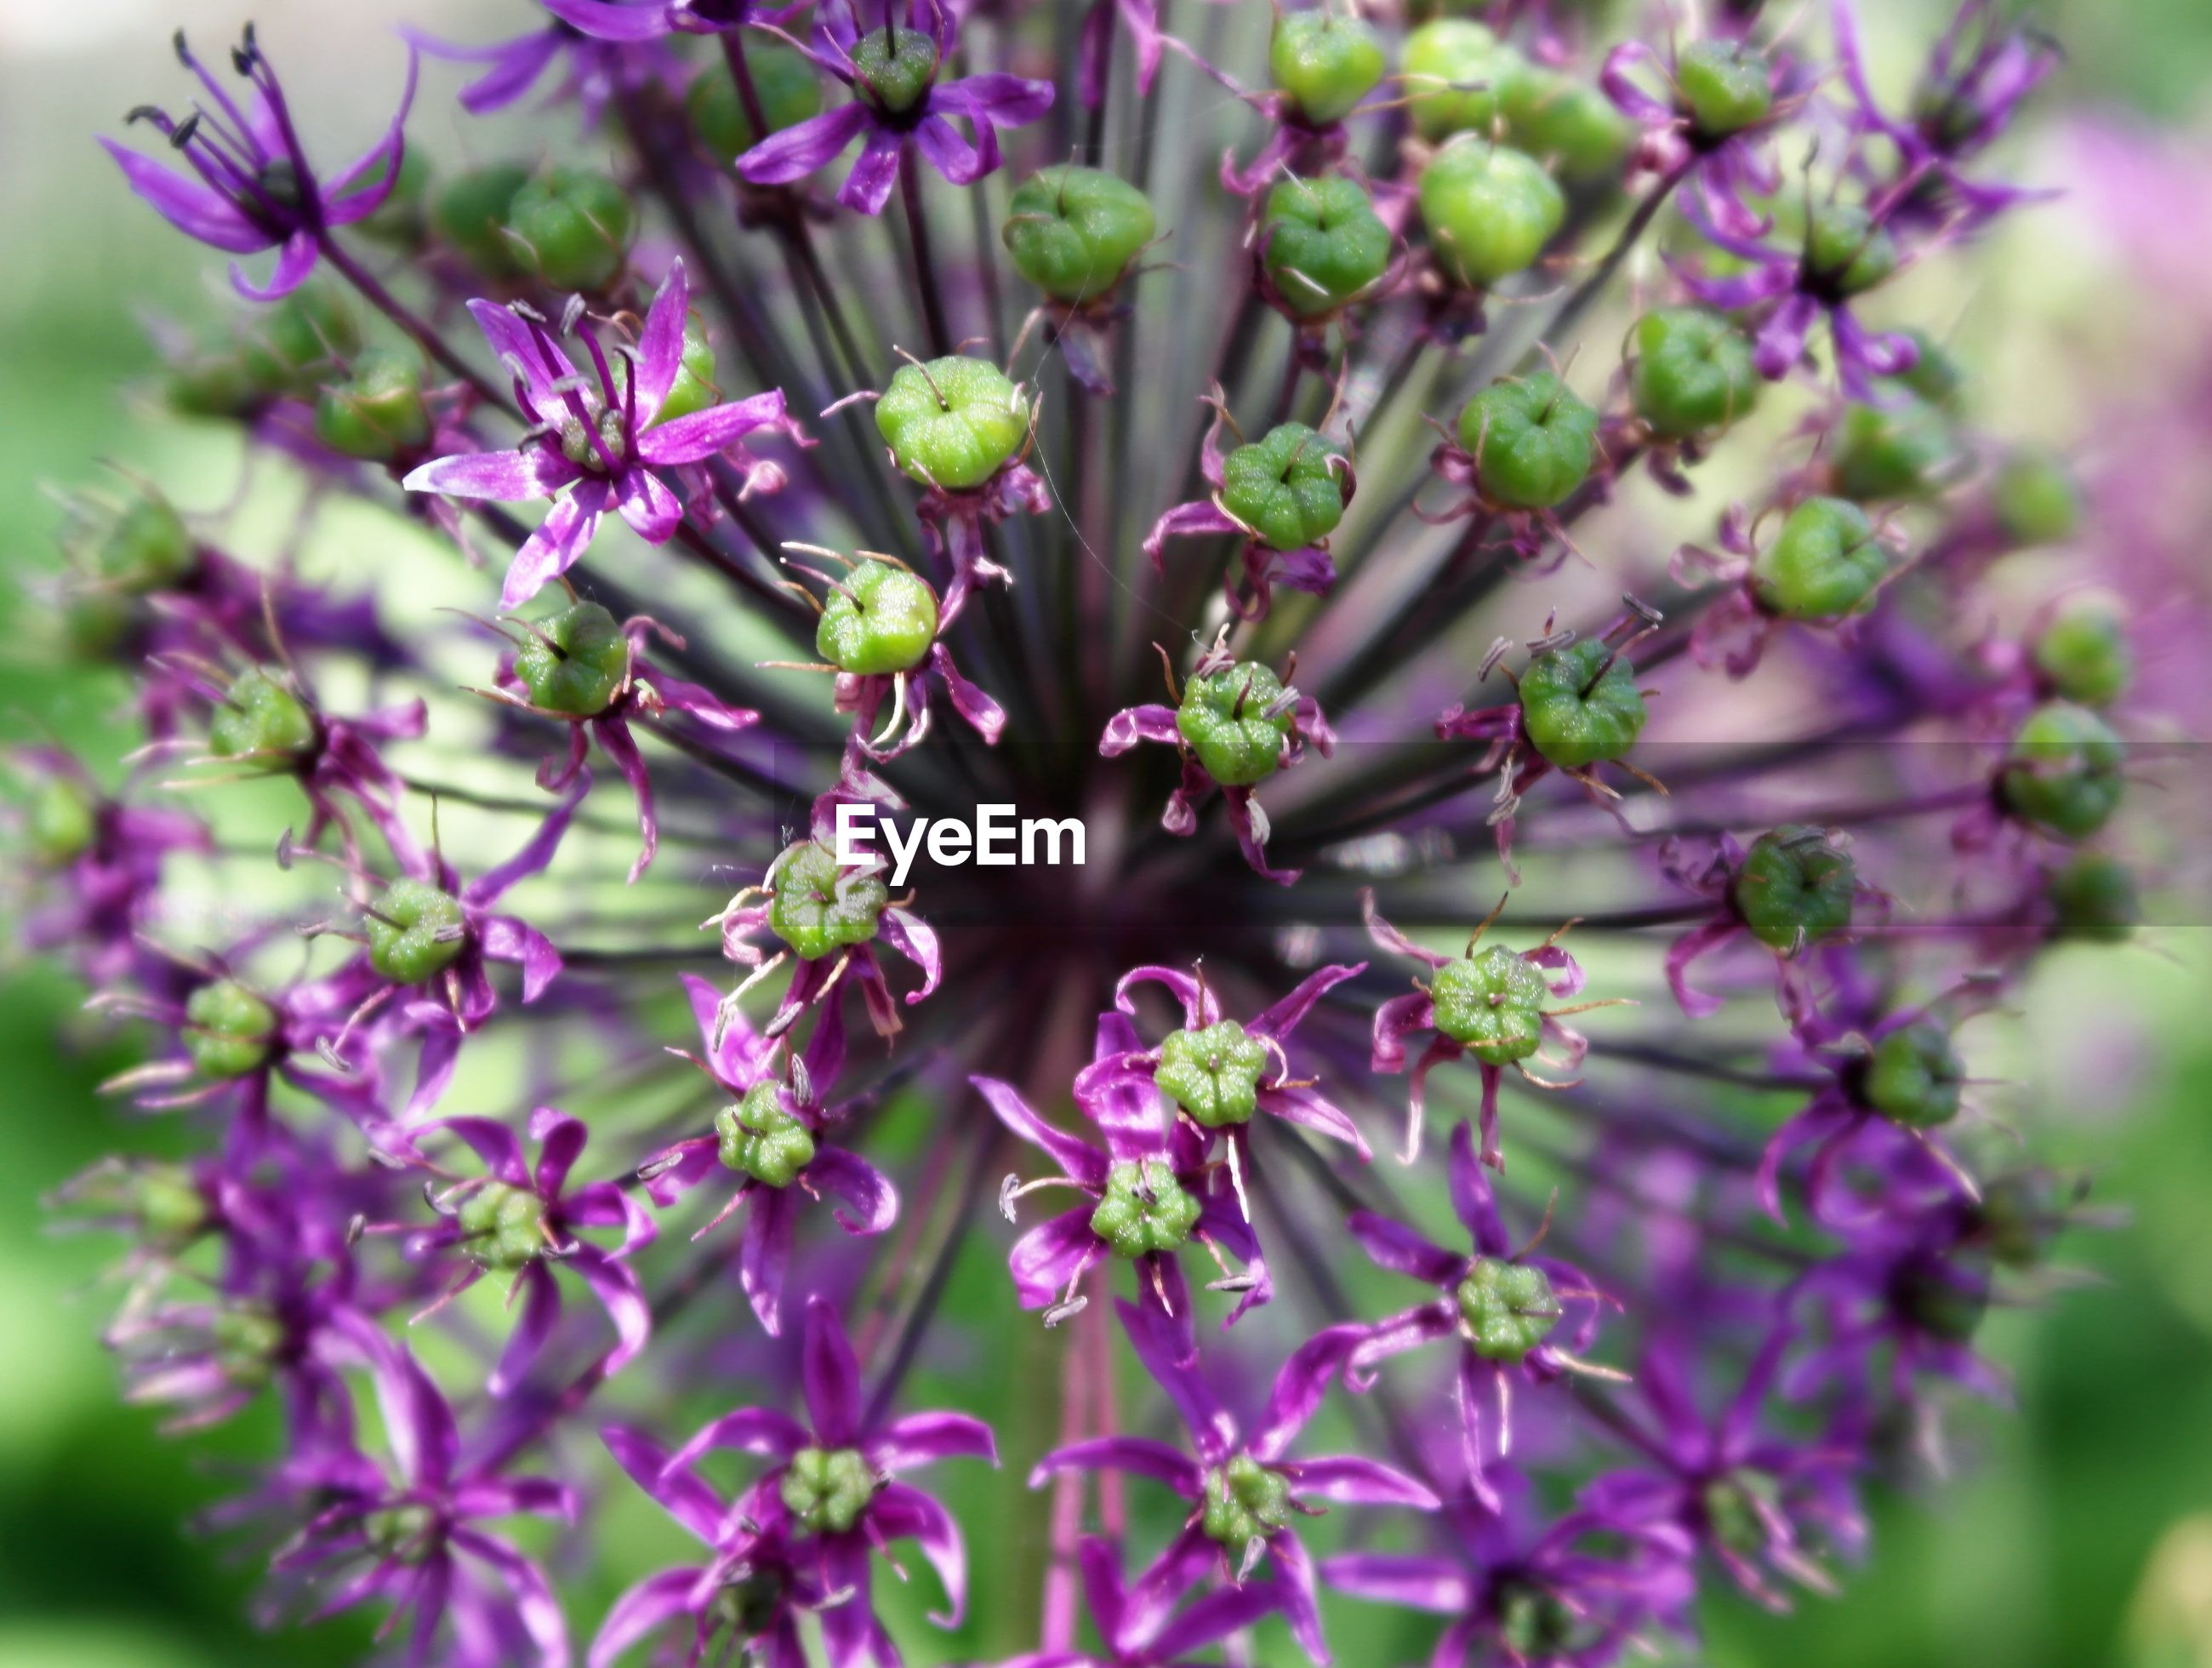 CLOSE-UP OF PURPLE FLOWERS GROWING OUTDOORS